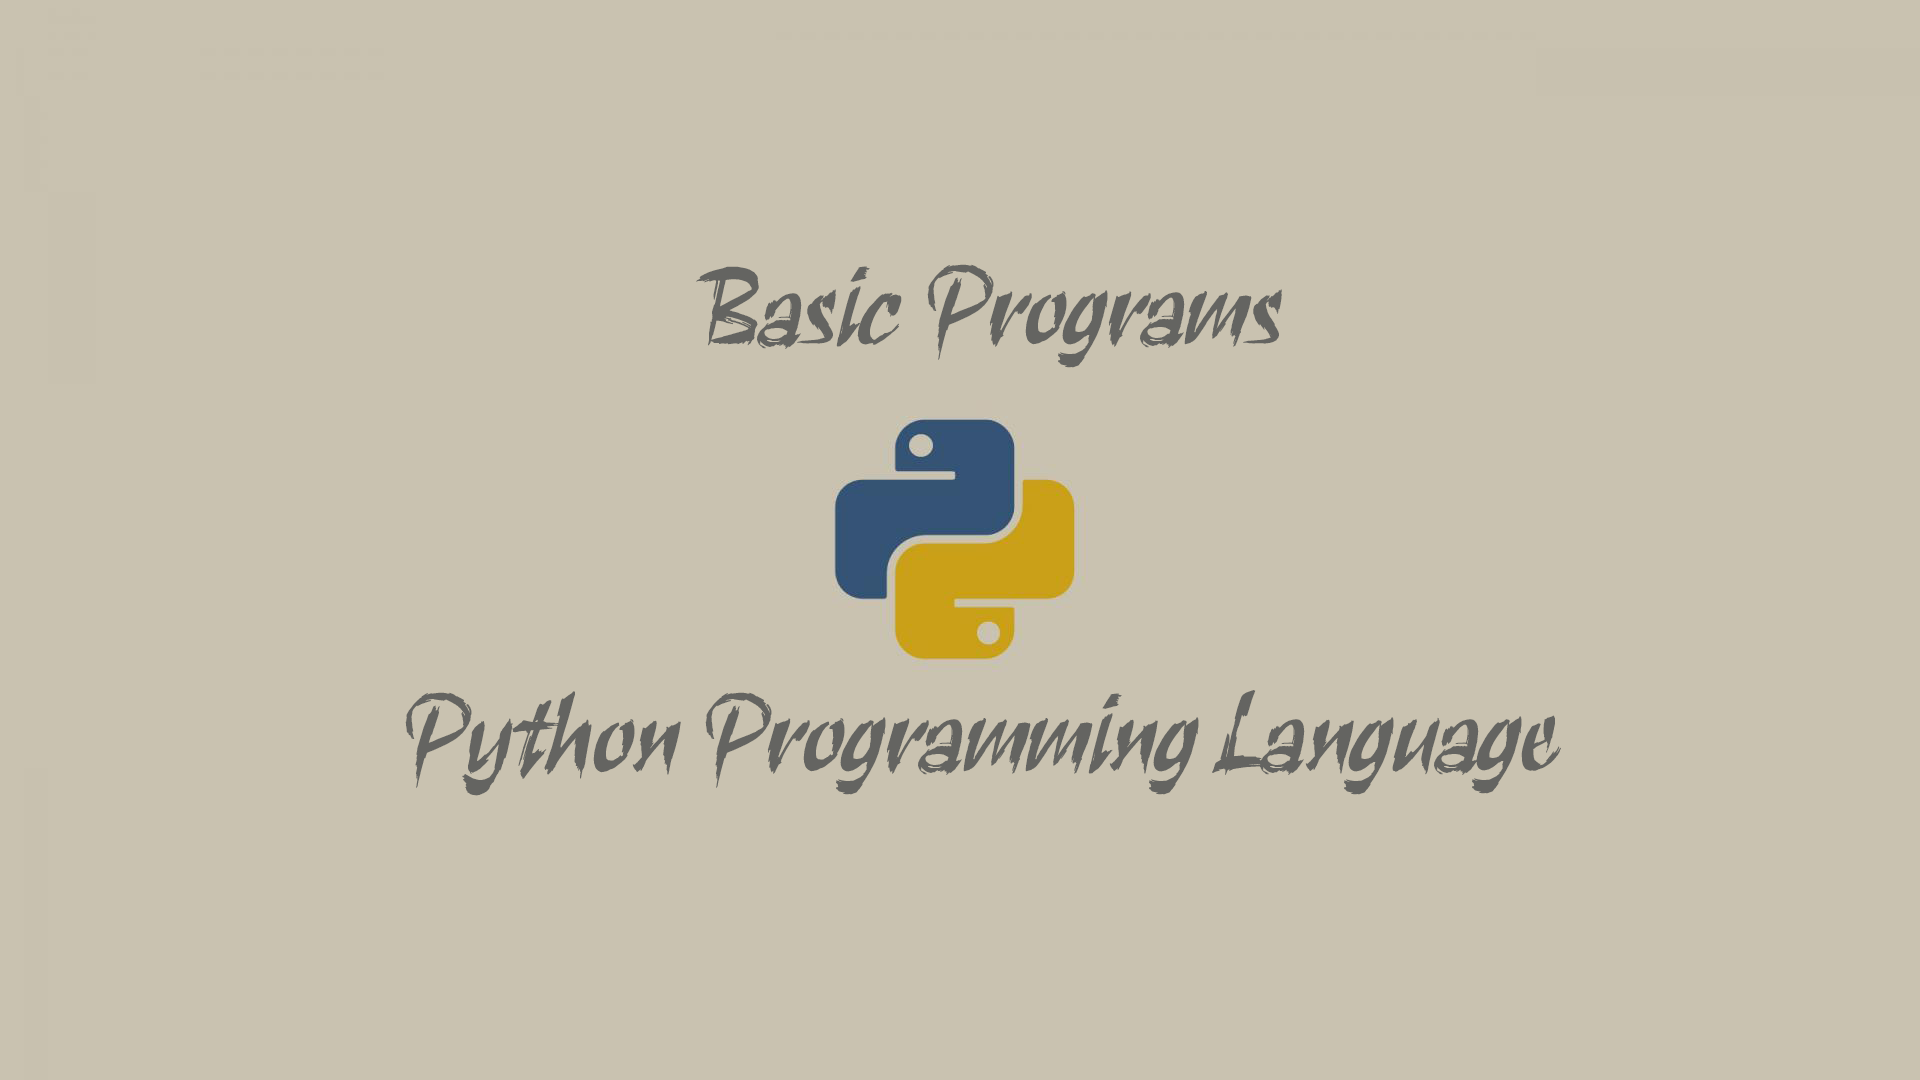 Basic Program - Python Programming Language